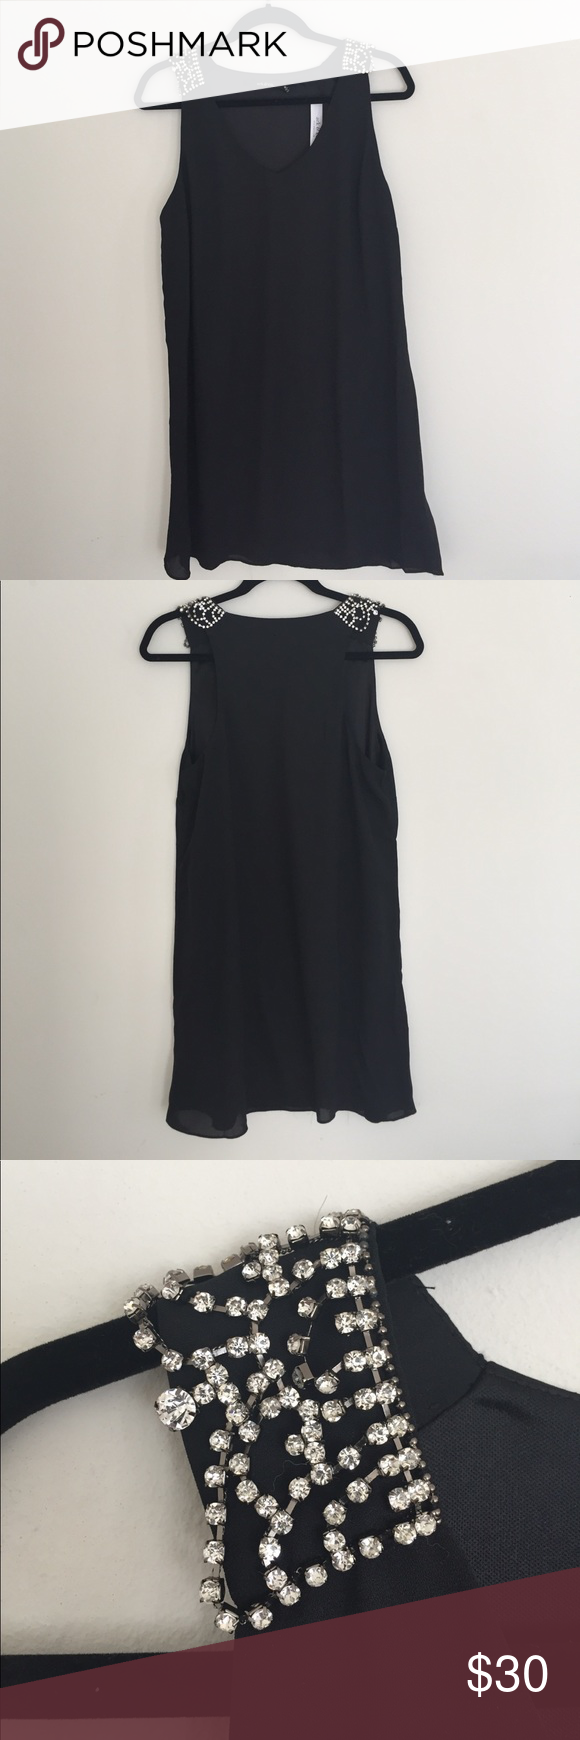 Black polyester short dress with rhinestones perfect condition